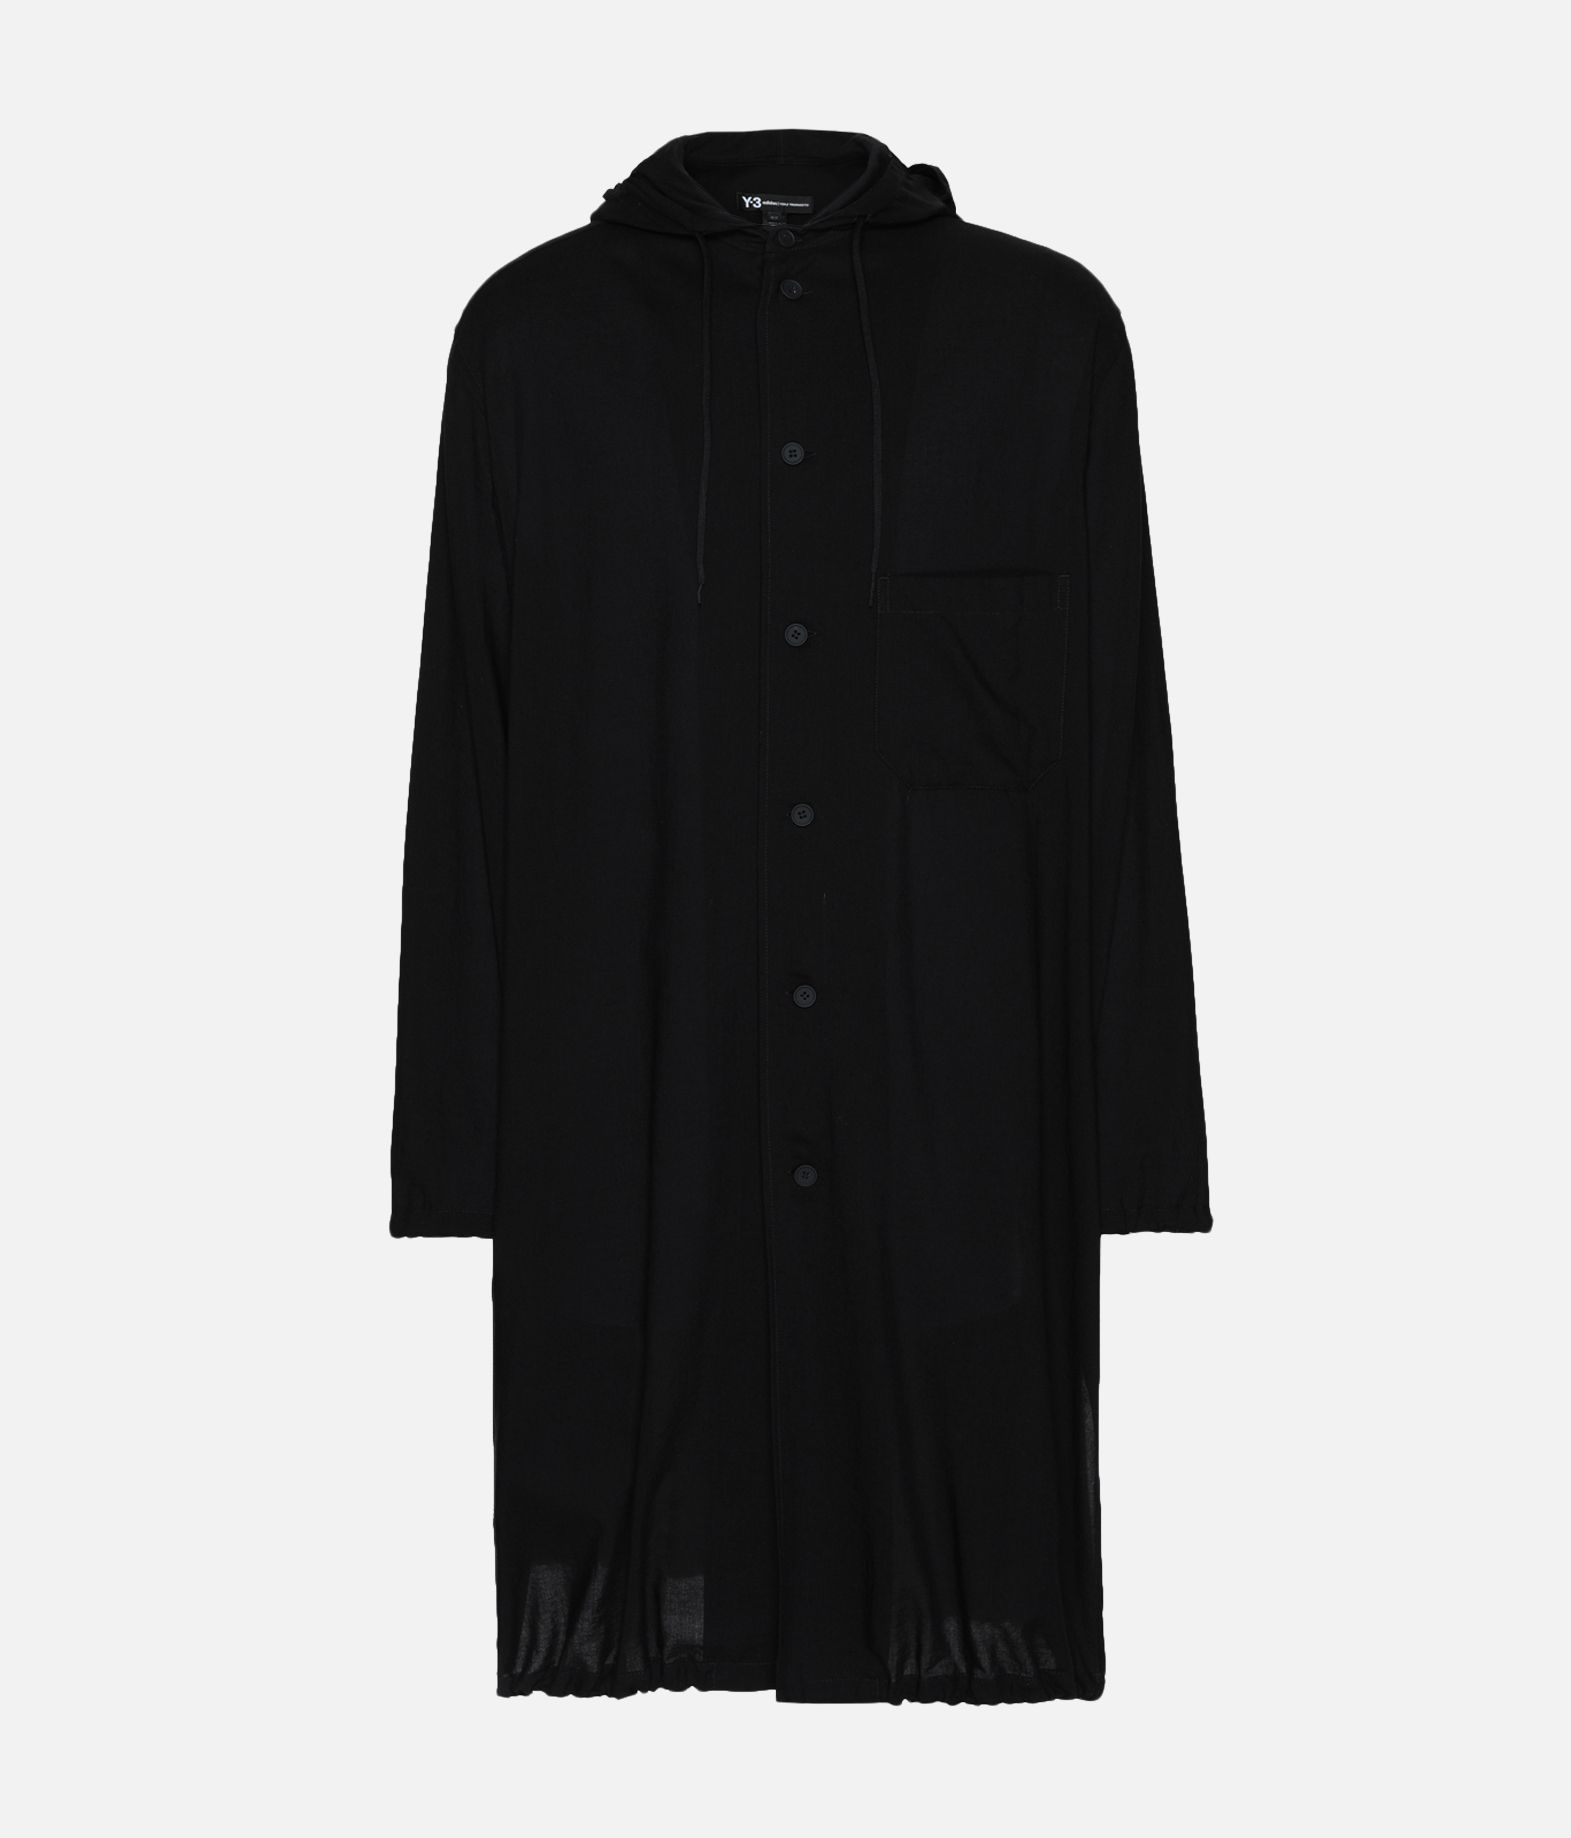 Y-3 Y-3 Hooded Long Shirt Long sleeve shirt Man f